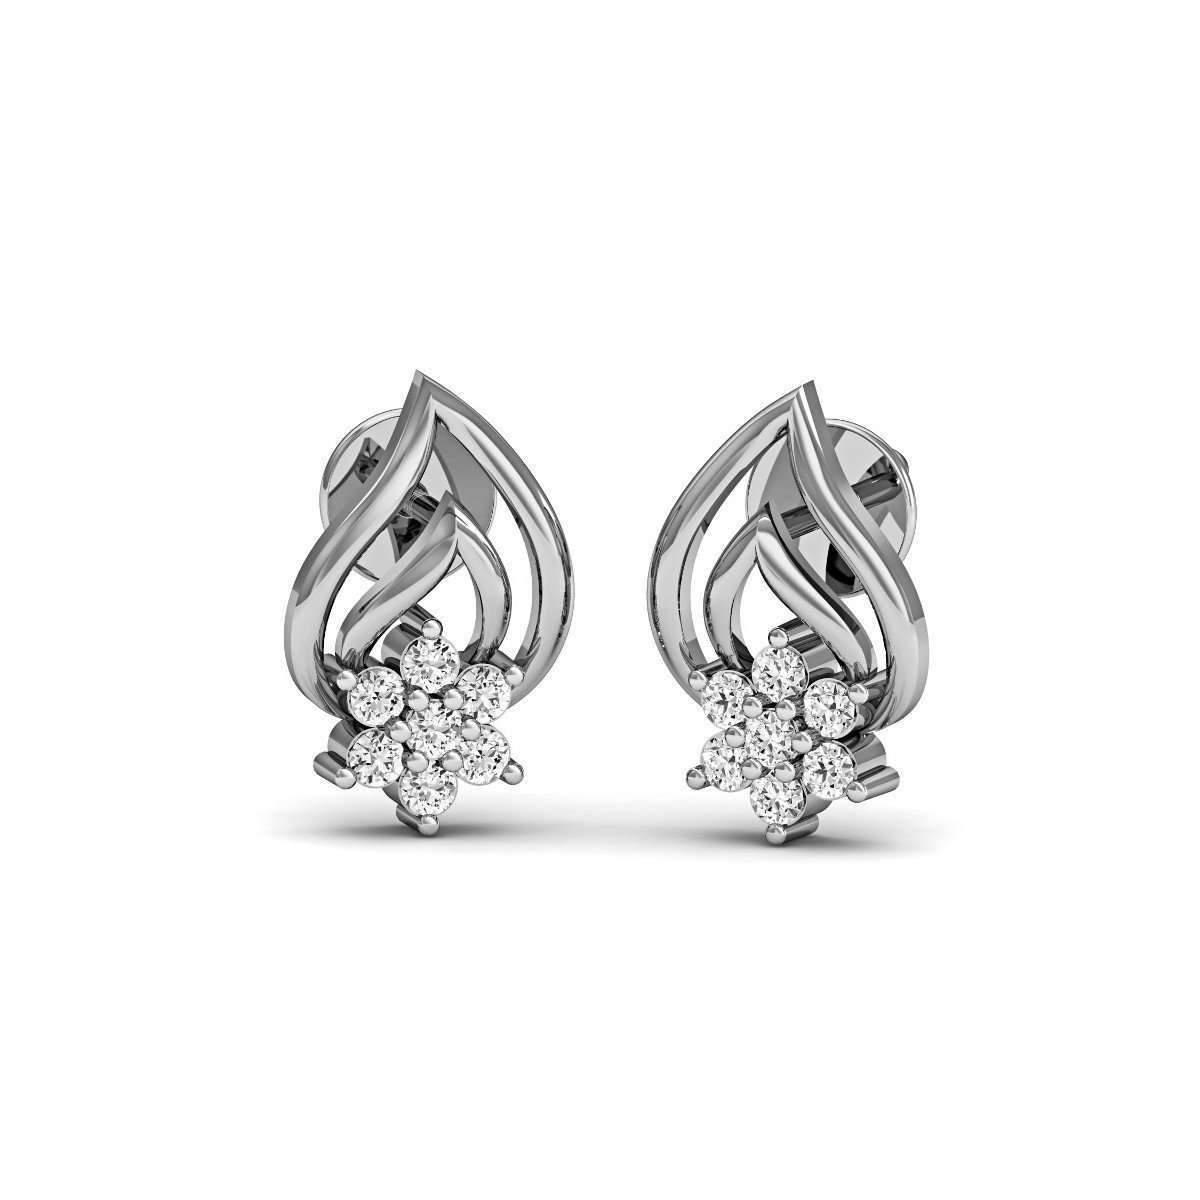 Diamoire Jewels Embellished Pave Diamond Earrings in 18kt White Gold LYjtw